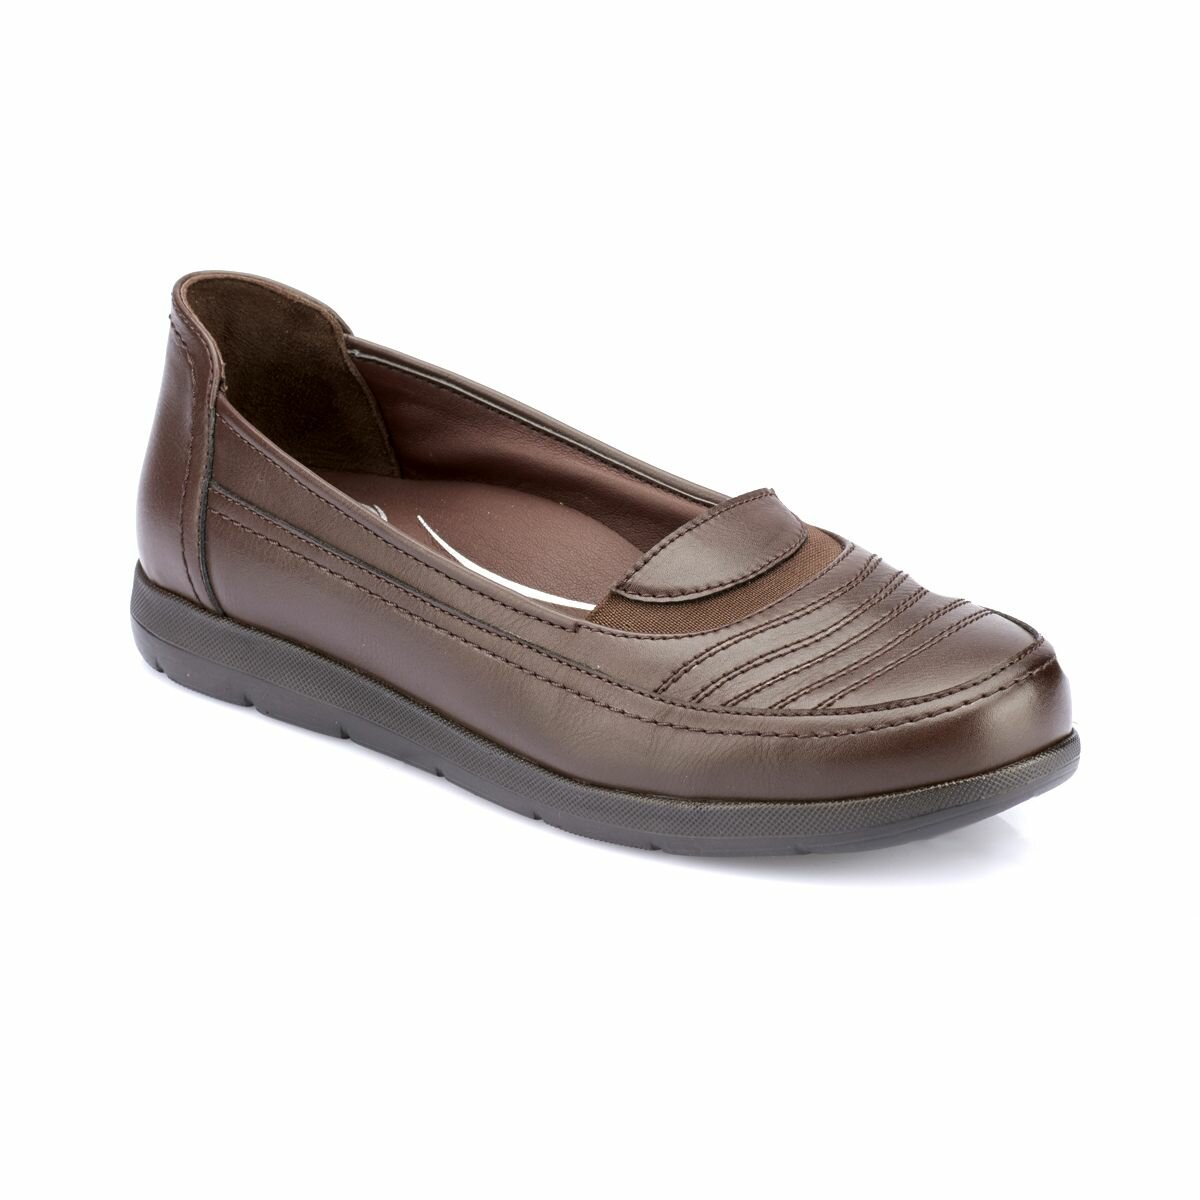 FLO 82.100174.Z Brown Women 'S Shoes Polaris 5 Point